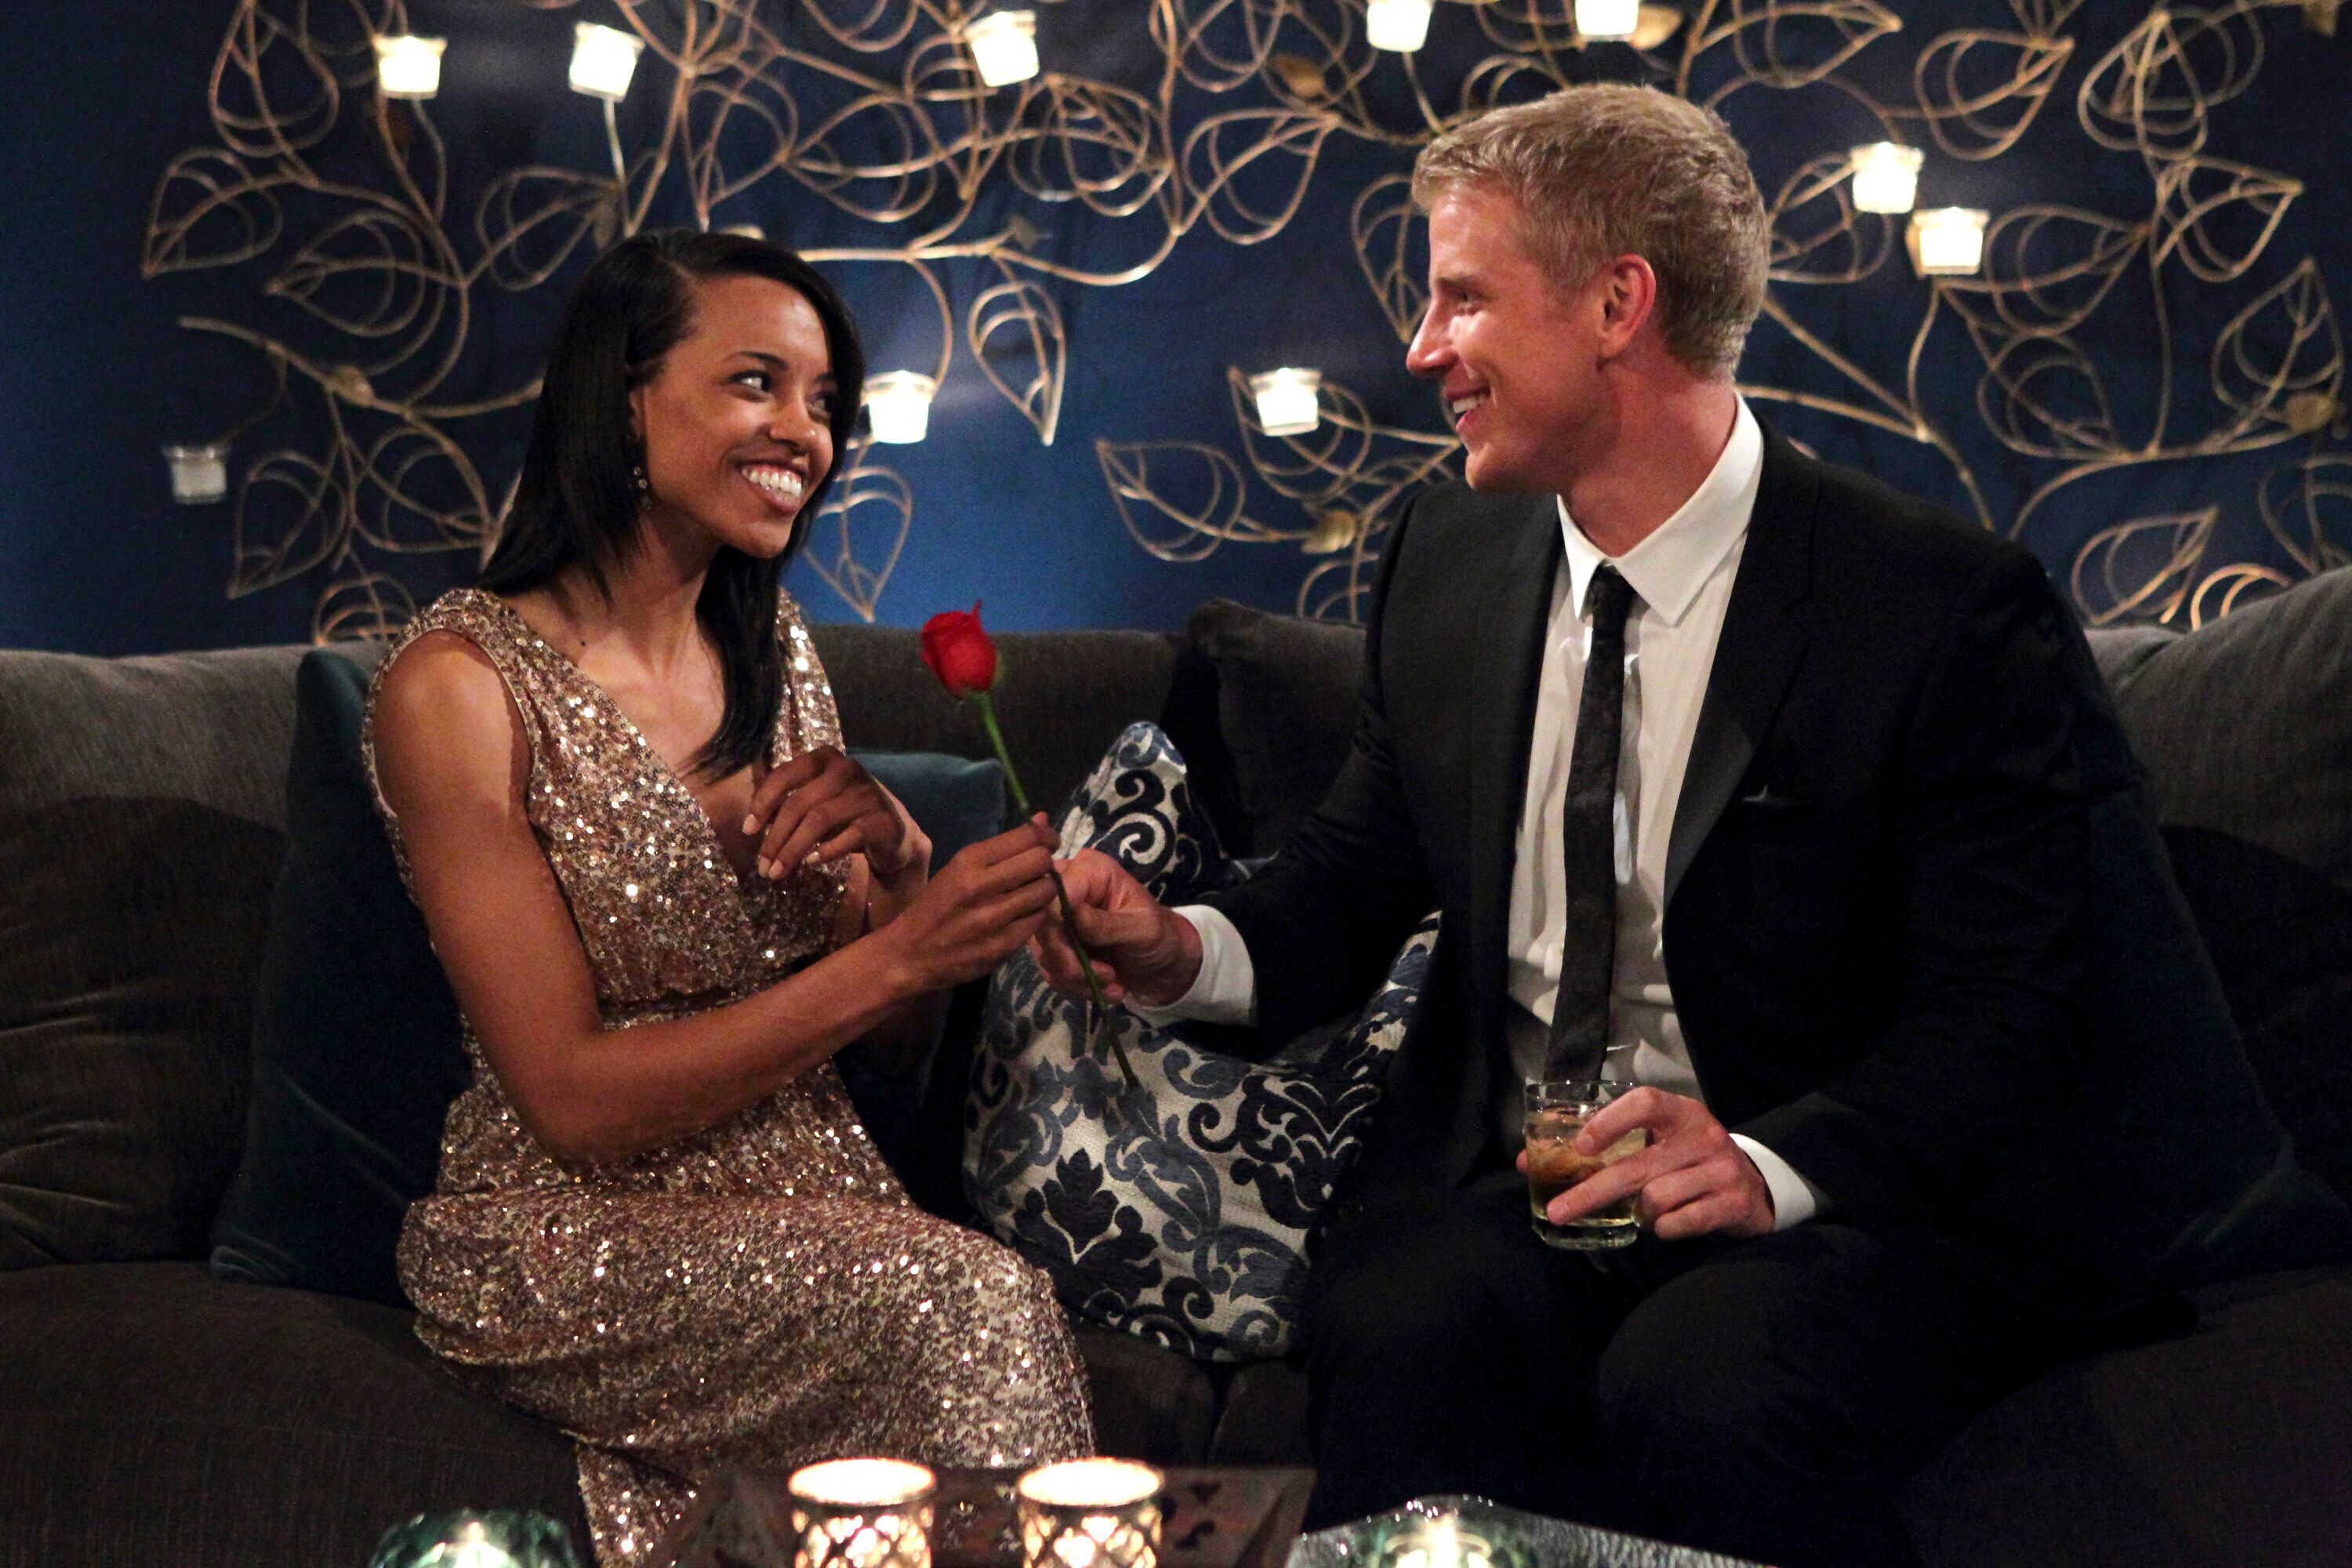 """Robyn Jedkins meets Sean Lowe on night one of Season 17 of """"The Bachelor."""" This episode aired in January 2013."""